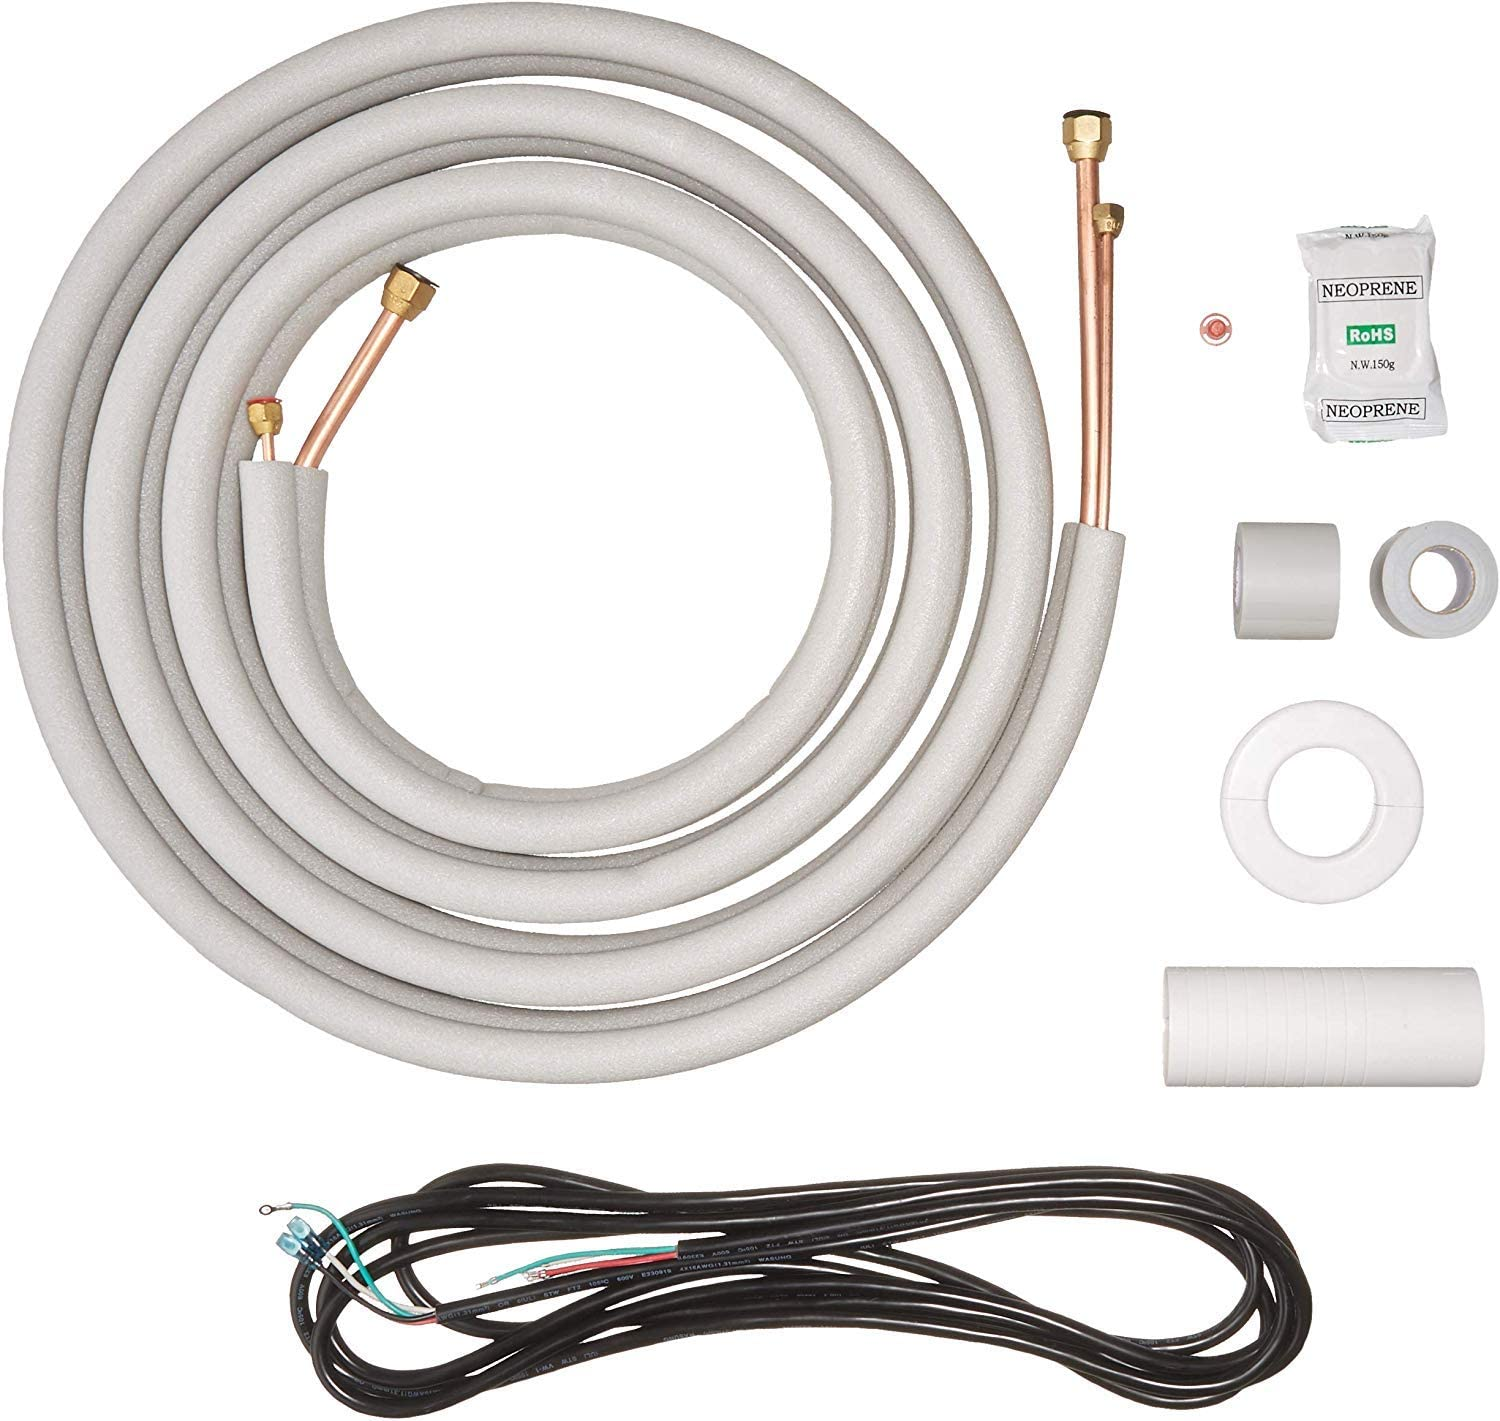 "Senville 16 Ft. Copper Pipes for Mini Split Air Conditioner, 1/4"" & 3/8"" OD, White"